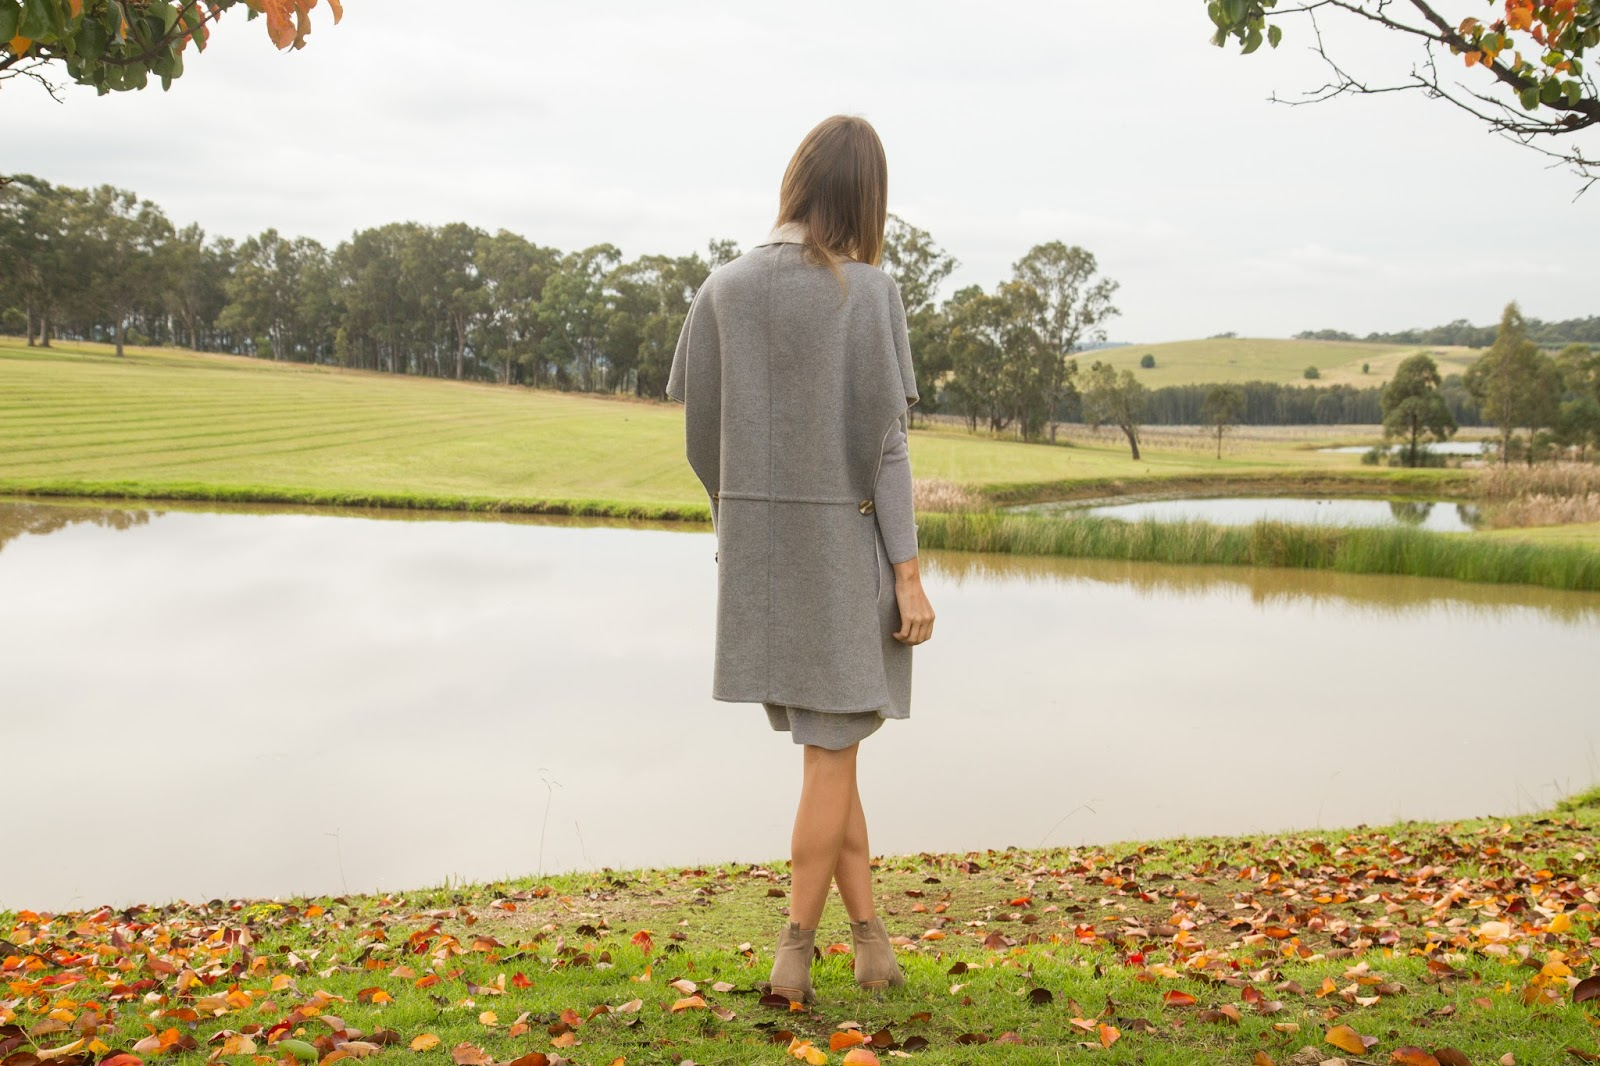 Fashion and travel blogger, Alison Hutchinson, is wearing a grey sweater dress and long wool vest for a day of wine tasting in the Hunter Valley